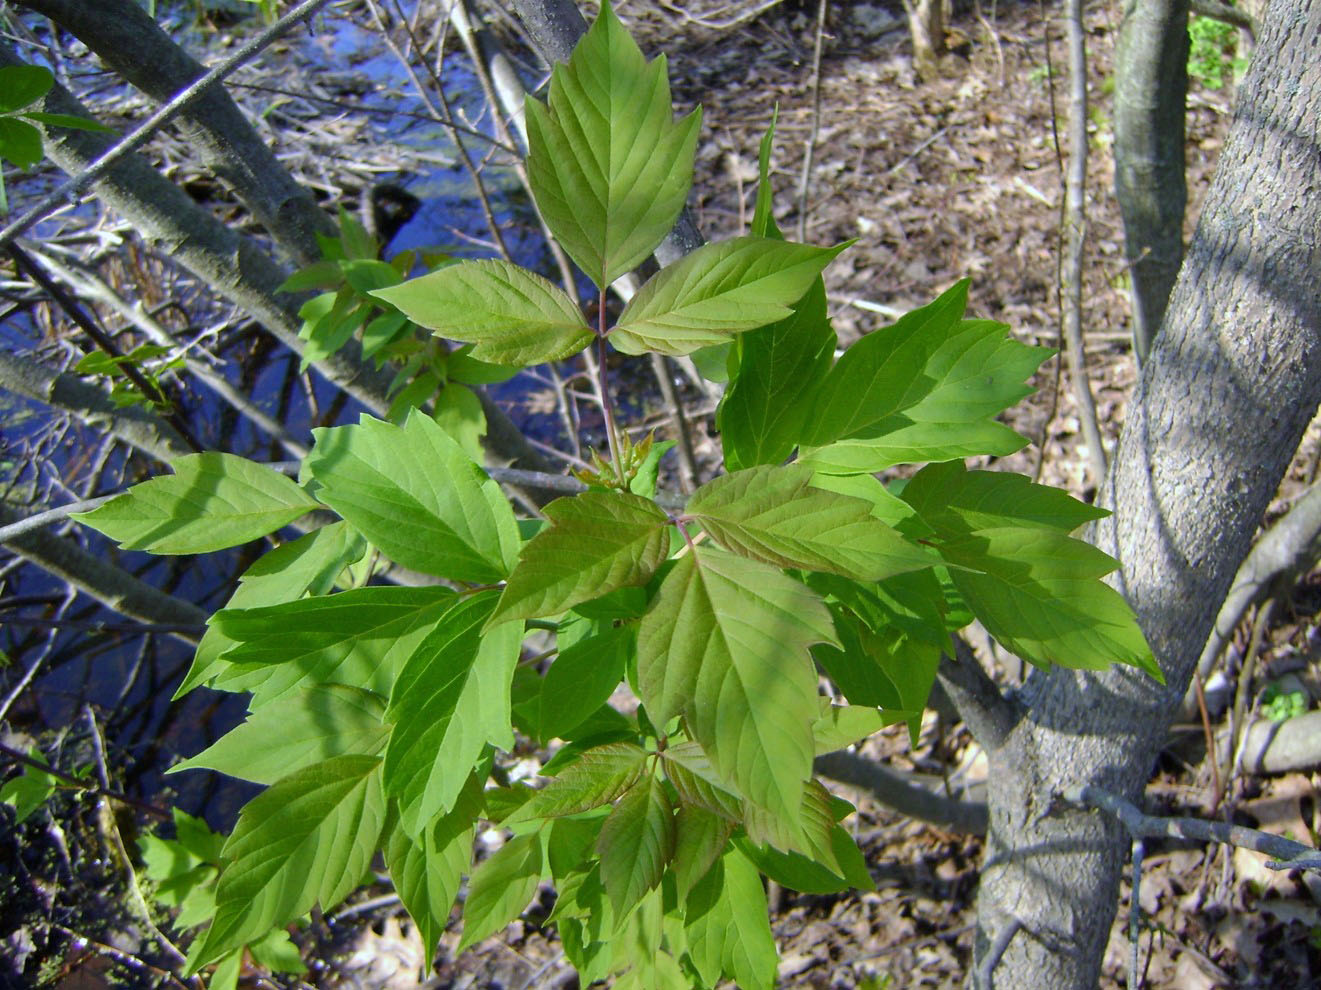 Box Elder compound leaves, Photo by Madeleine DeManche